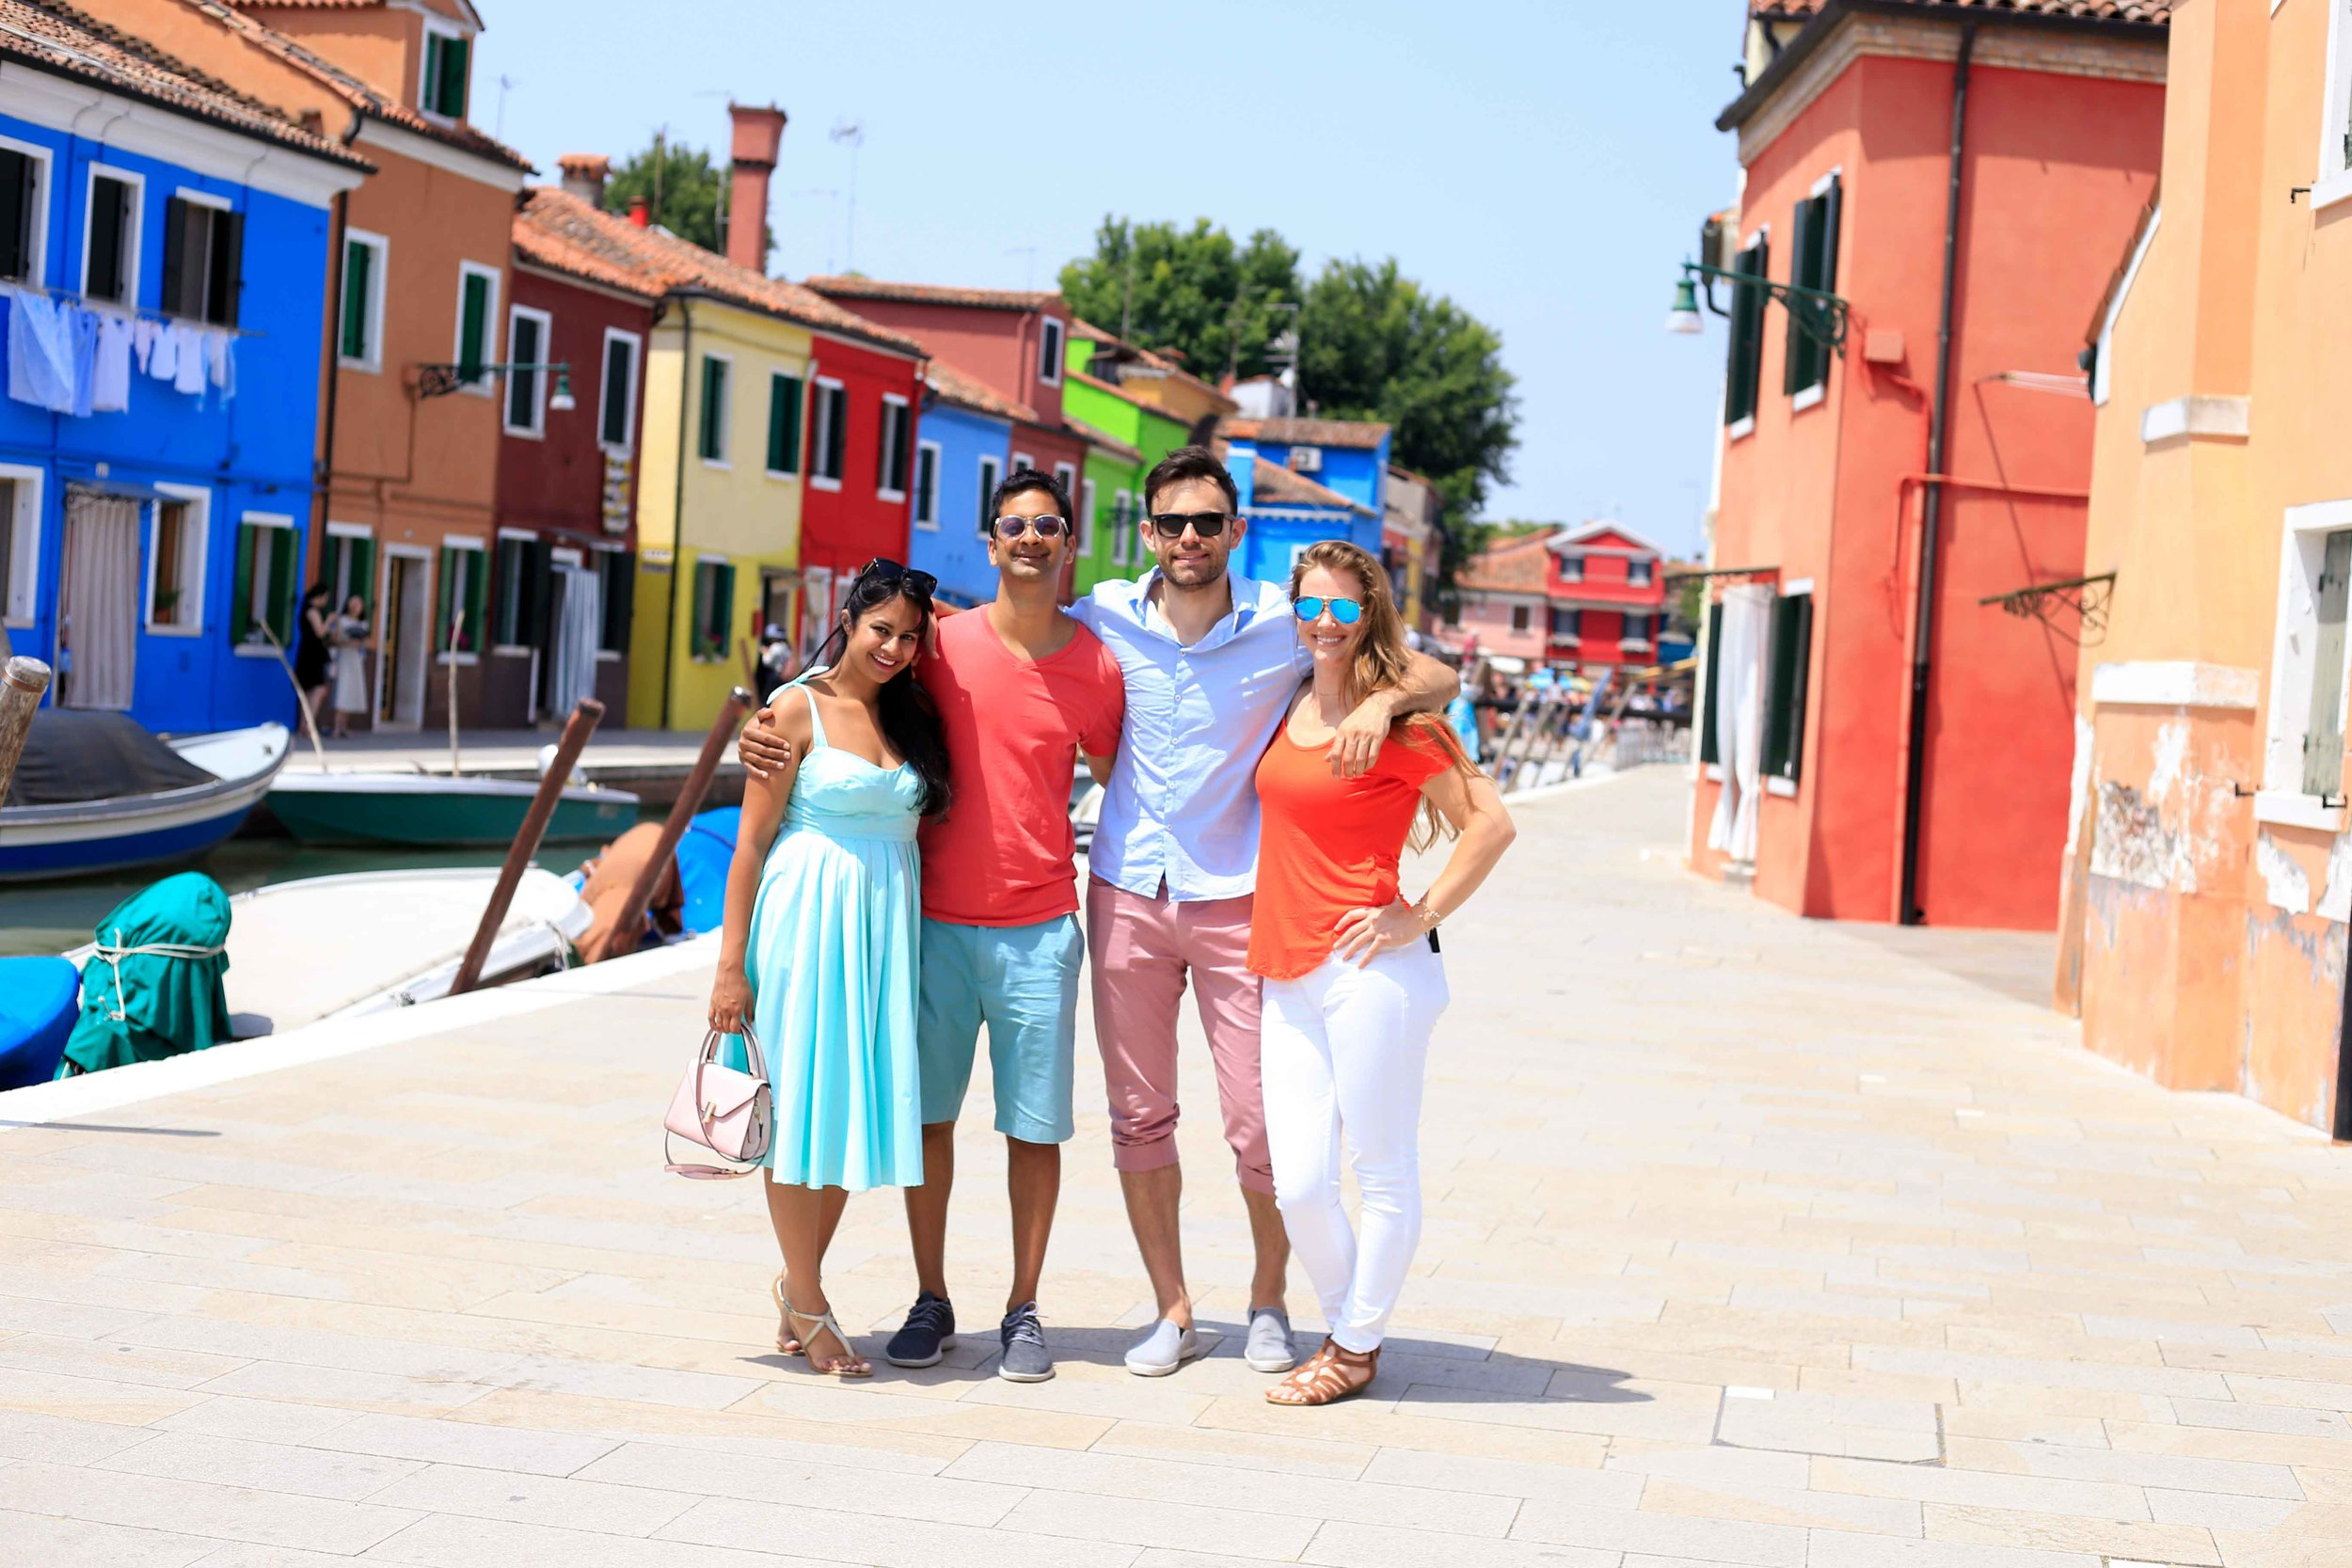 The charming city of Burano!